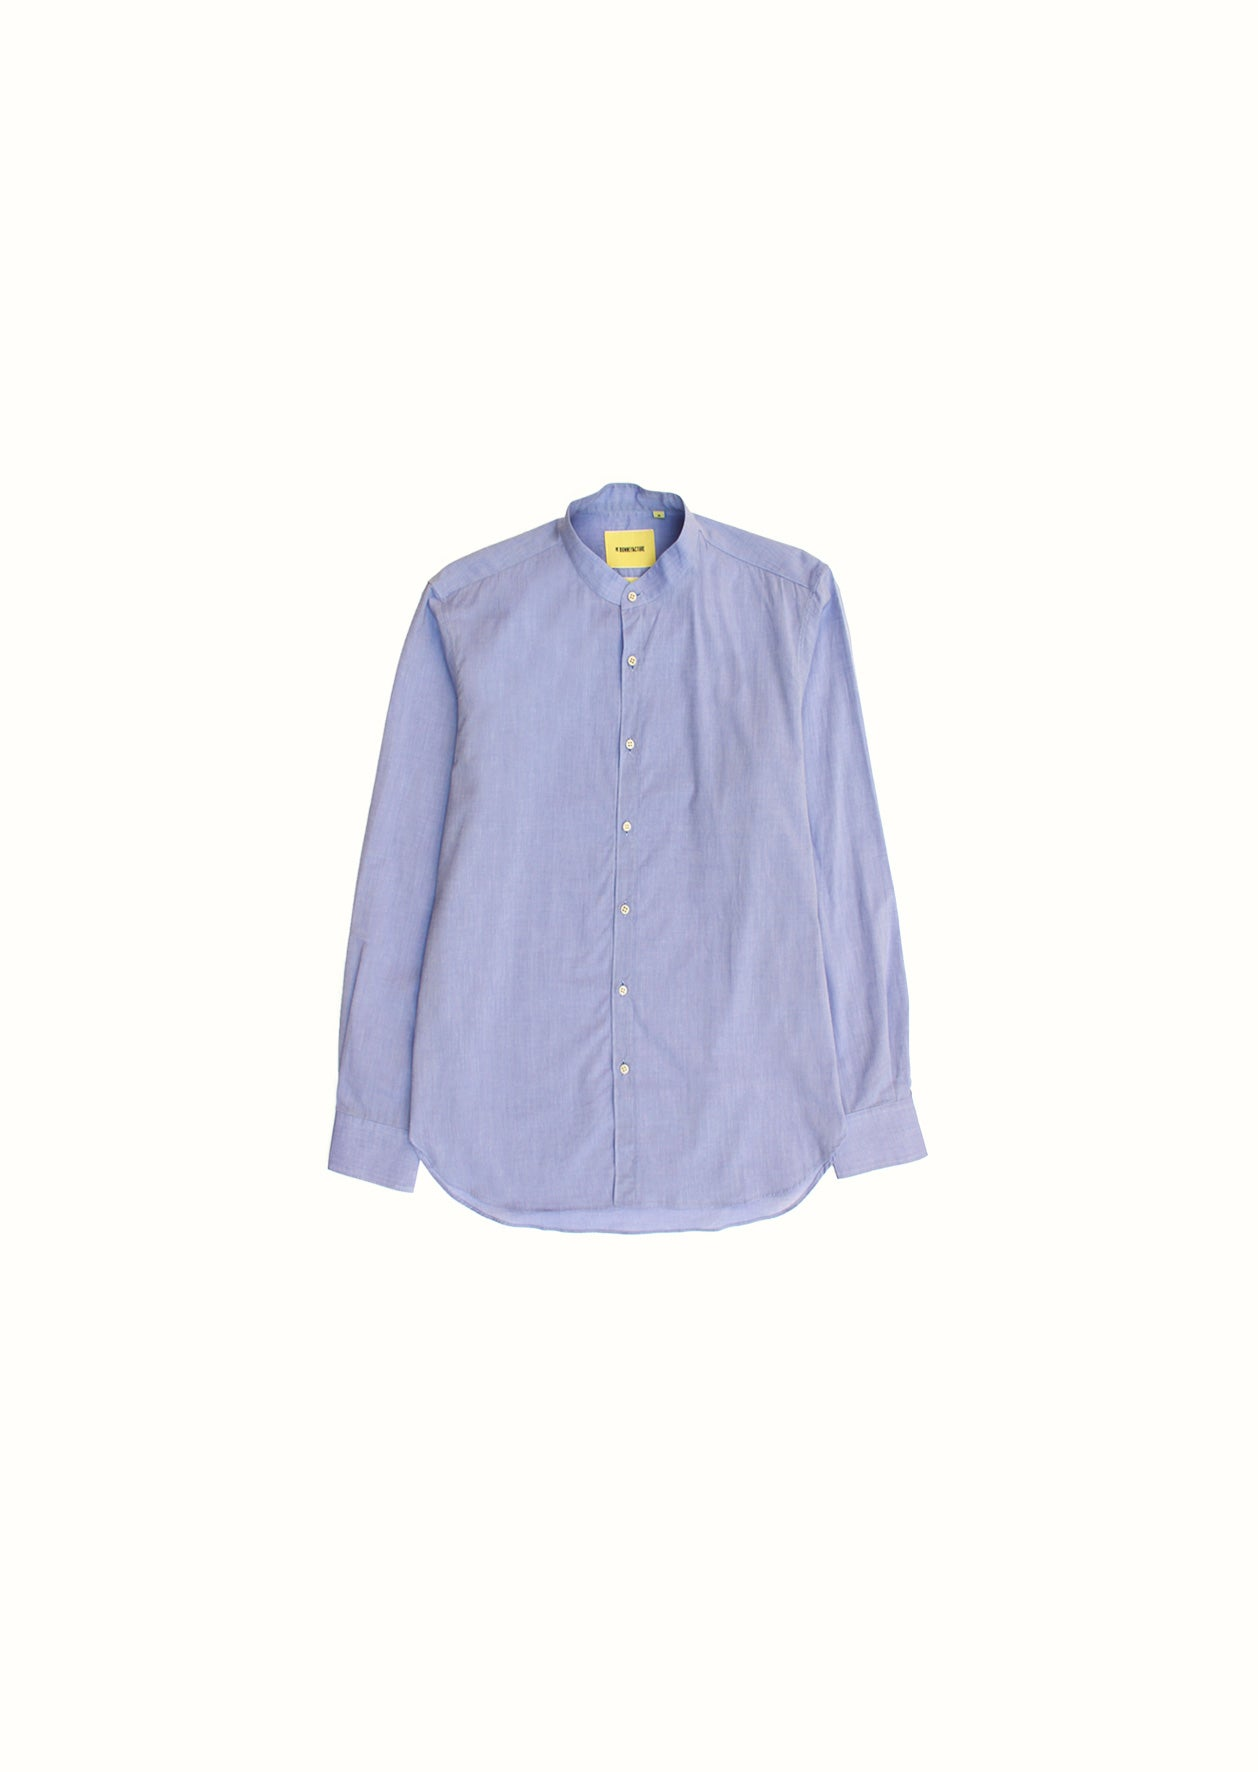 Mao collar shirt - Cotton chambray - Blue - De Bonne Facture